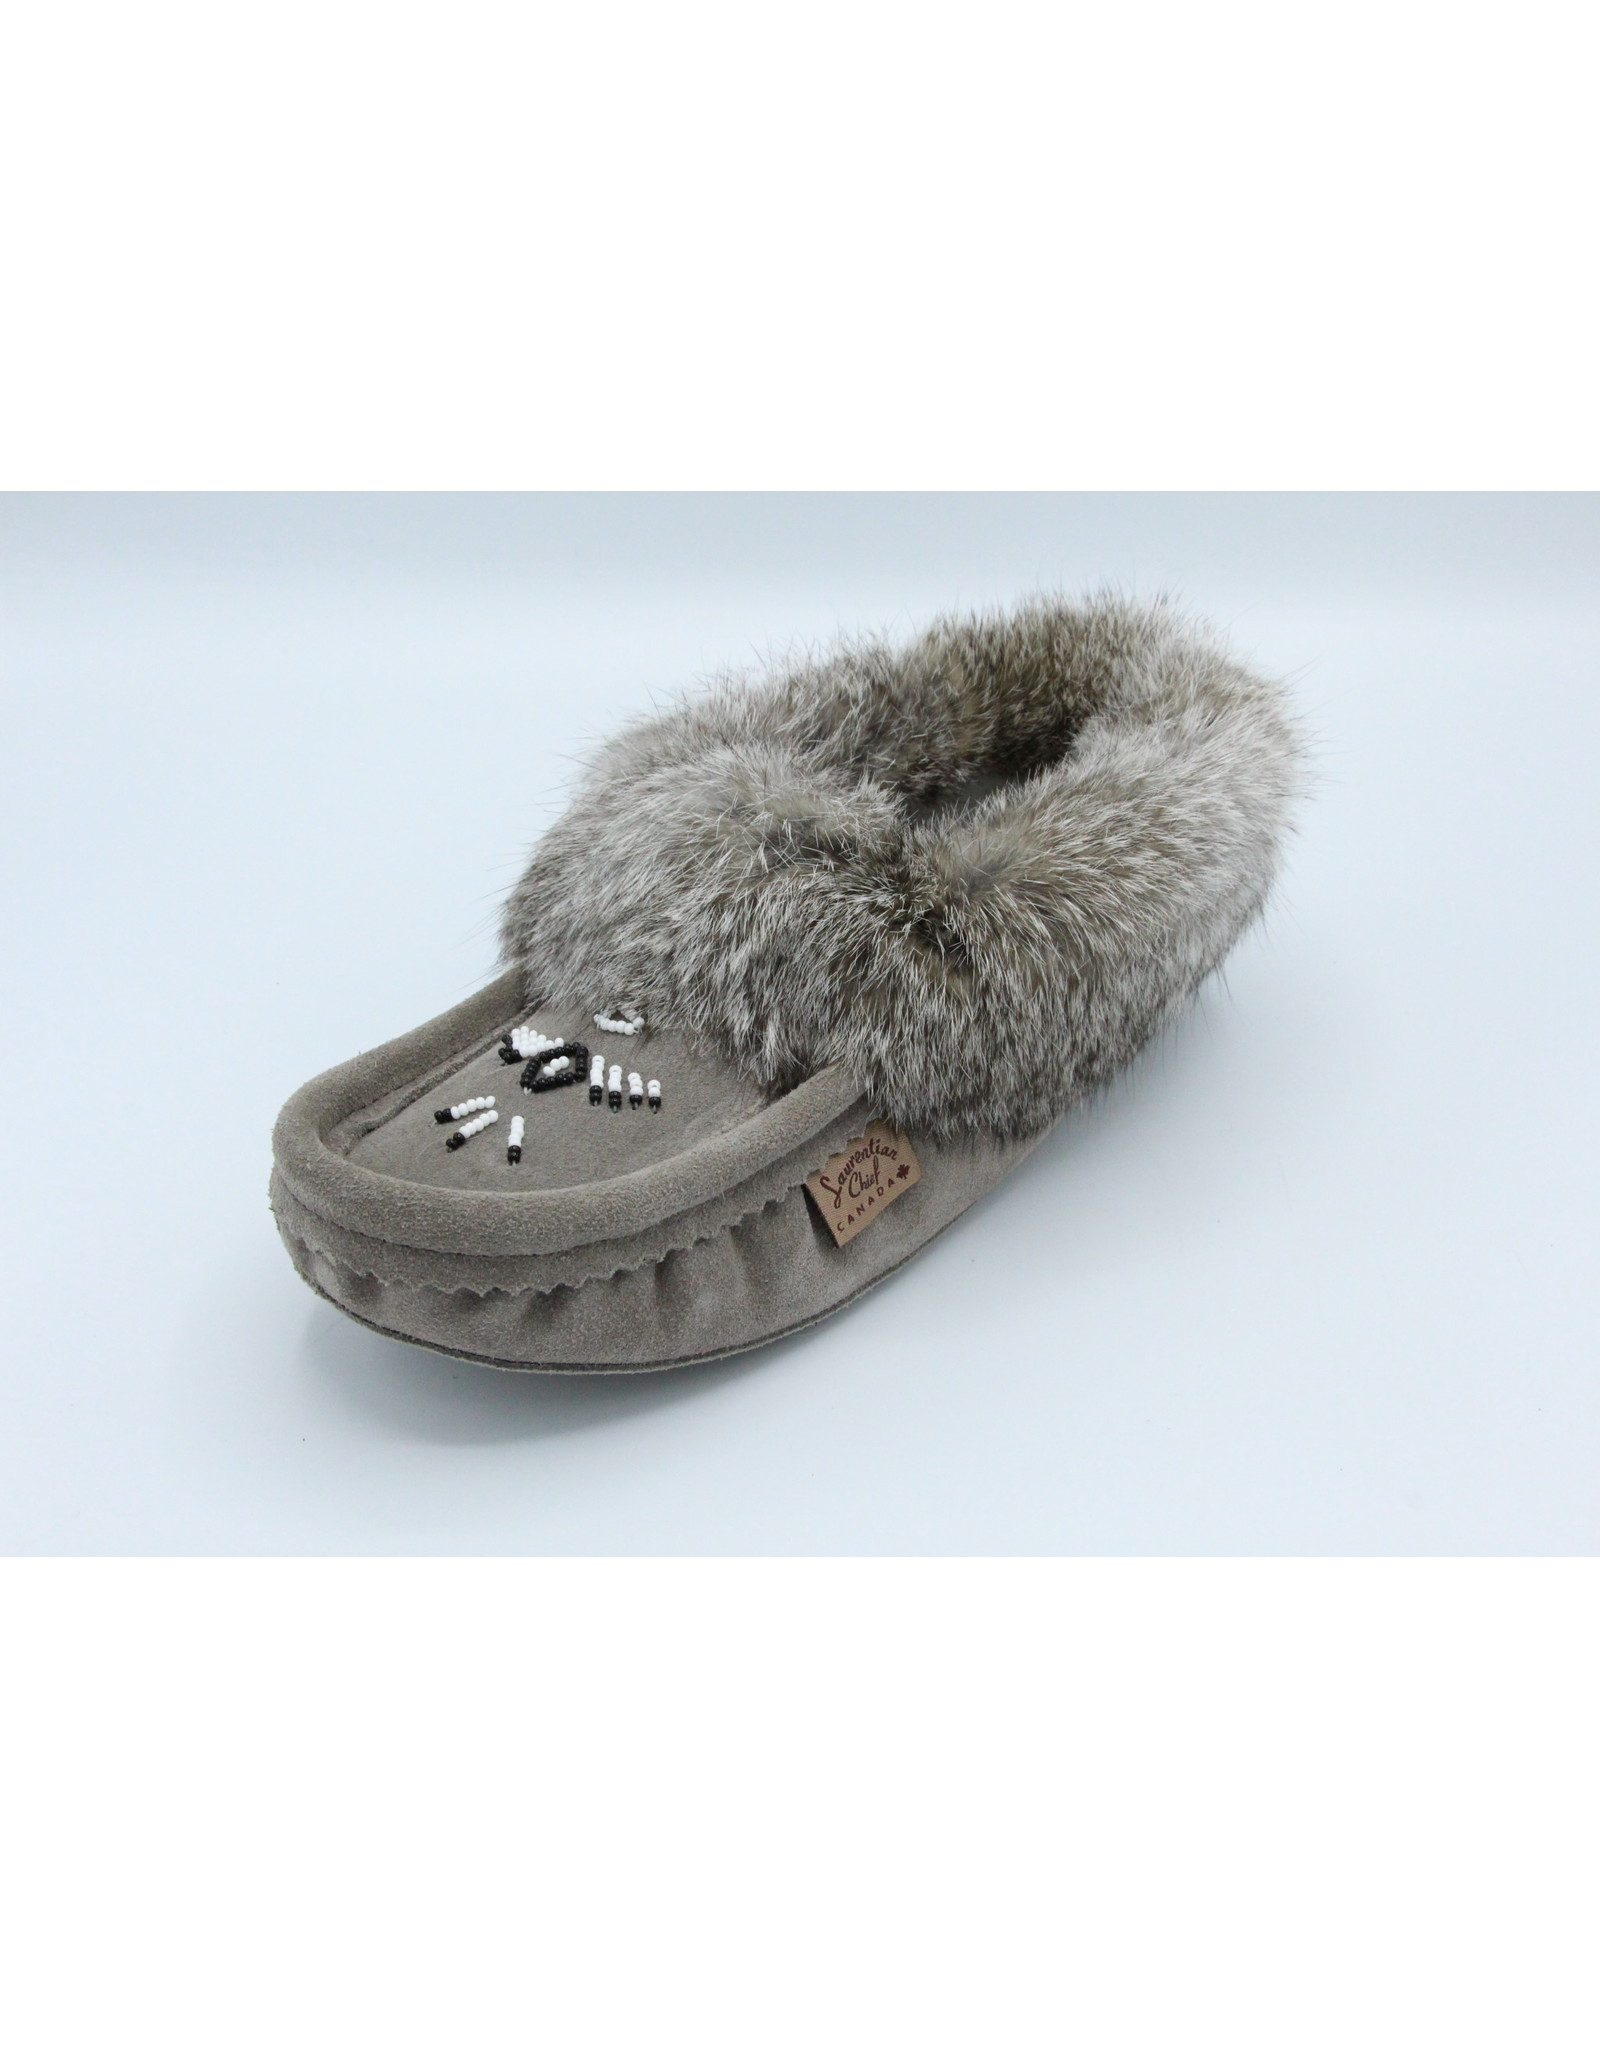 Charcoal Suede Fur Slipper Moccasin - 660L